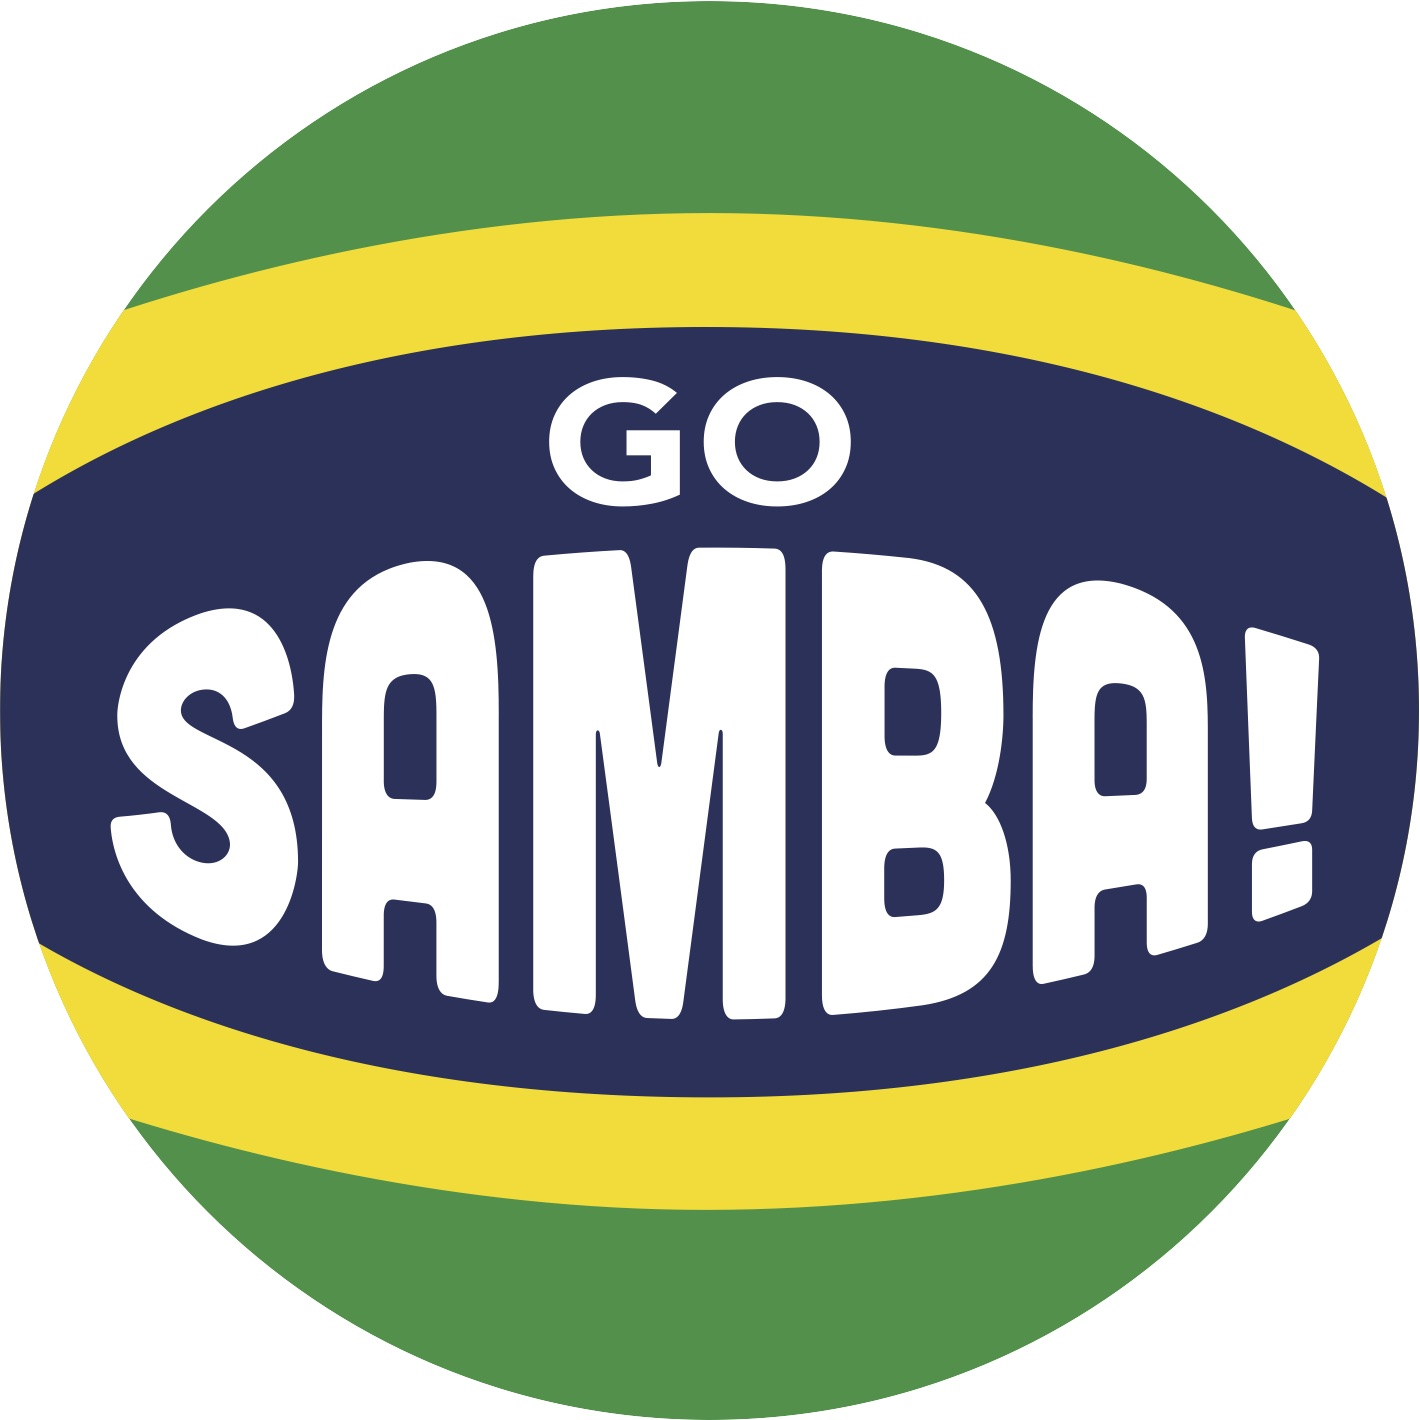 This episode is sponsored by GoSamba.net! - Drums from Brazil in the USA!